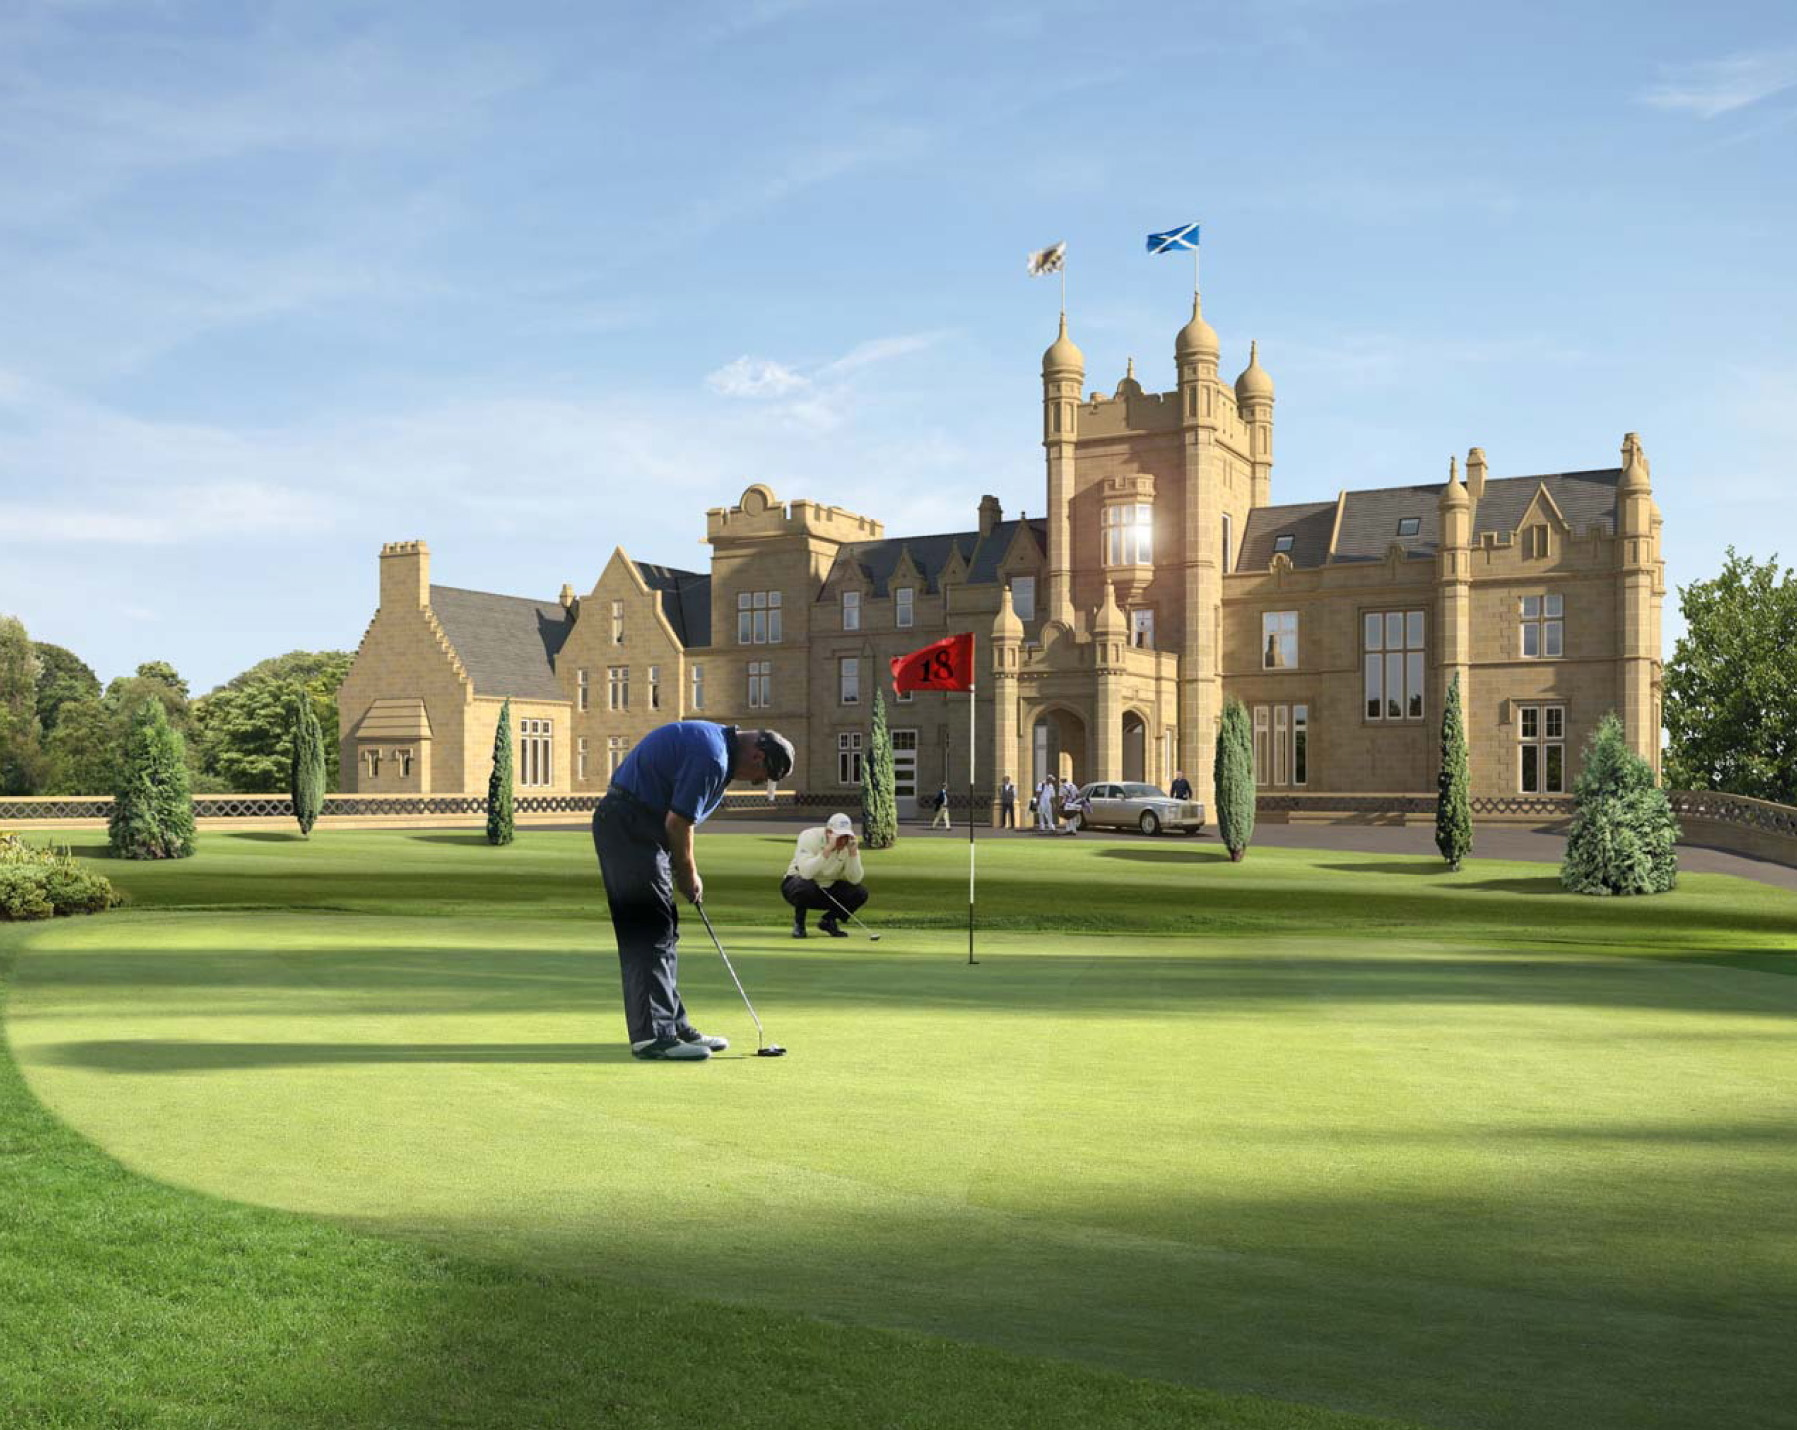 An impression of planned Jack Nicklaus golf course at Ury, near Stonehaven.